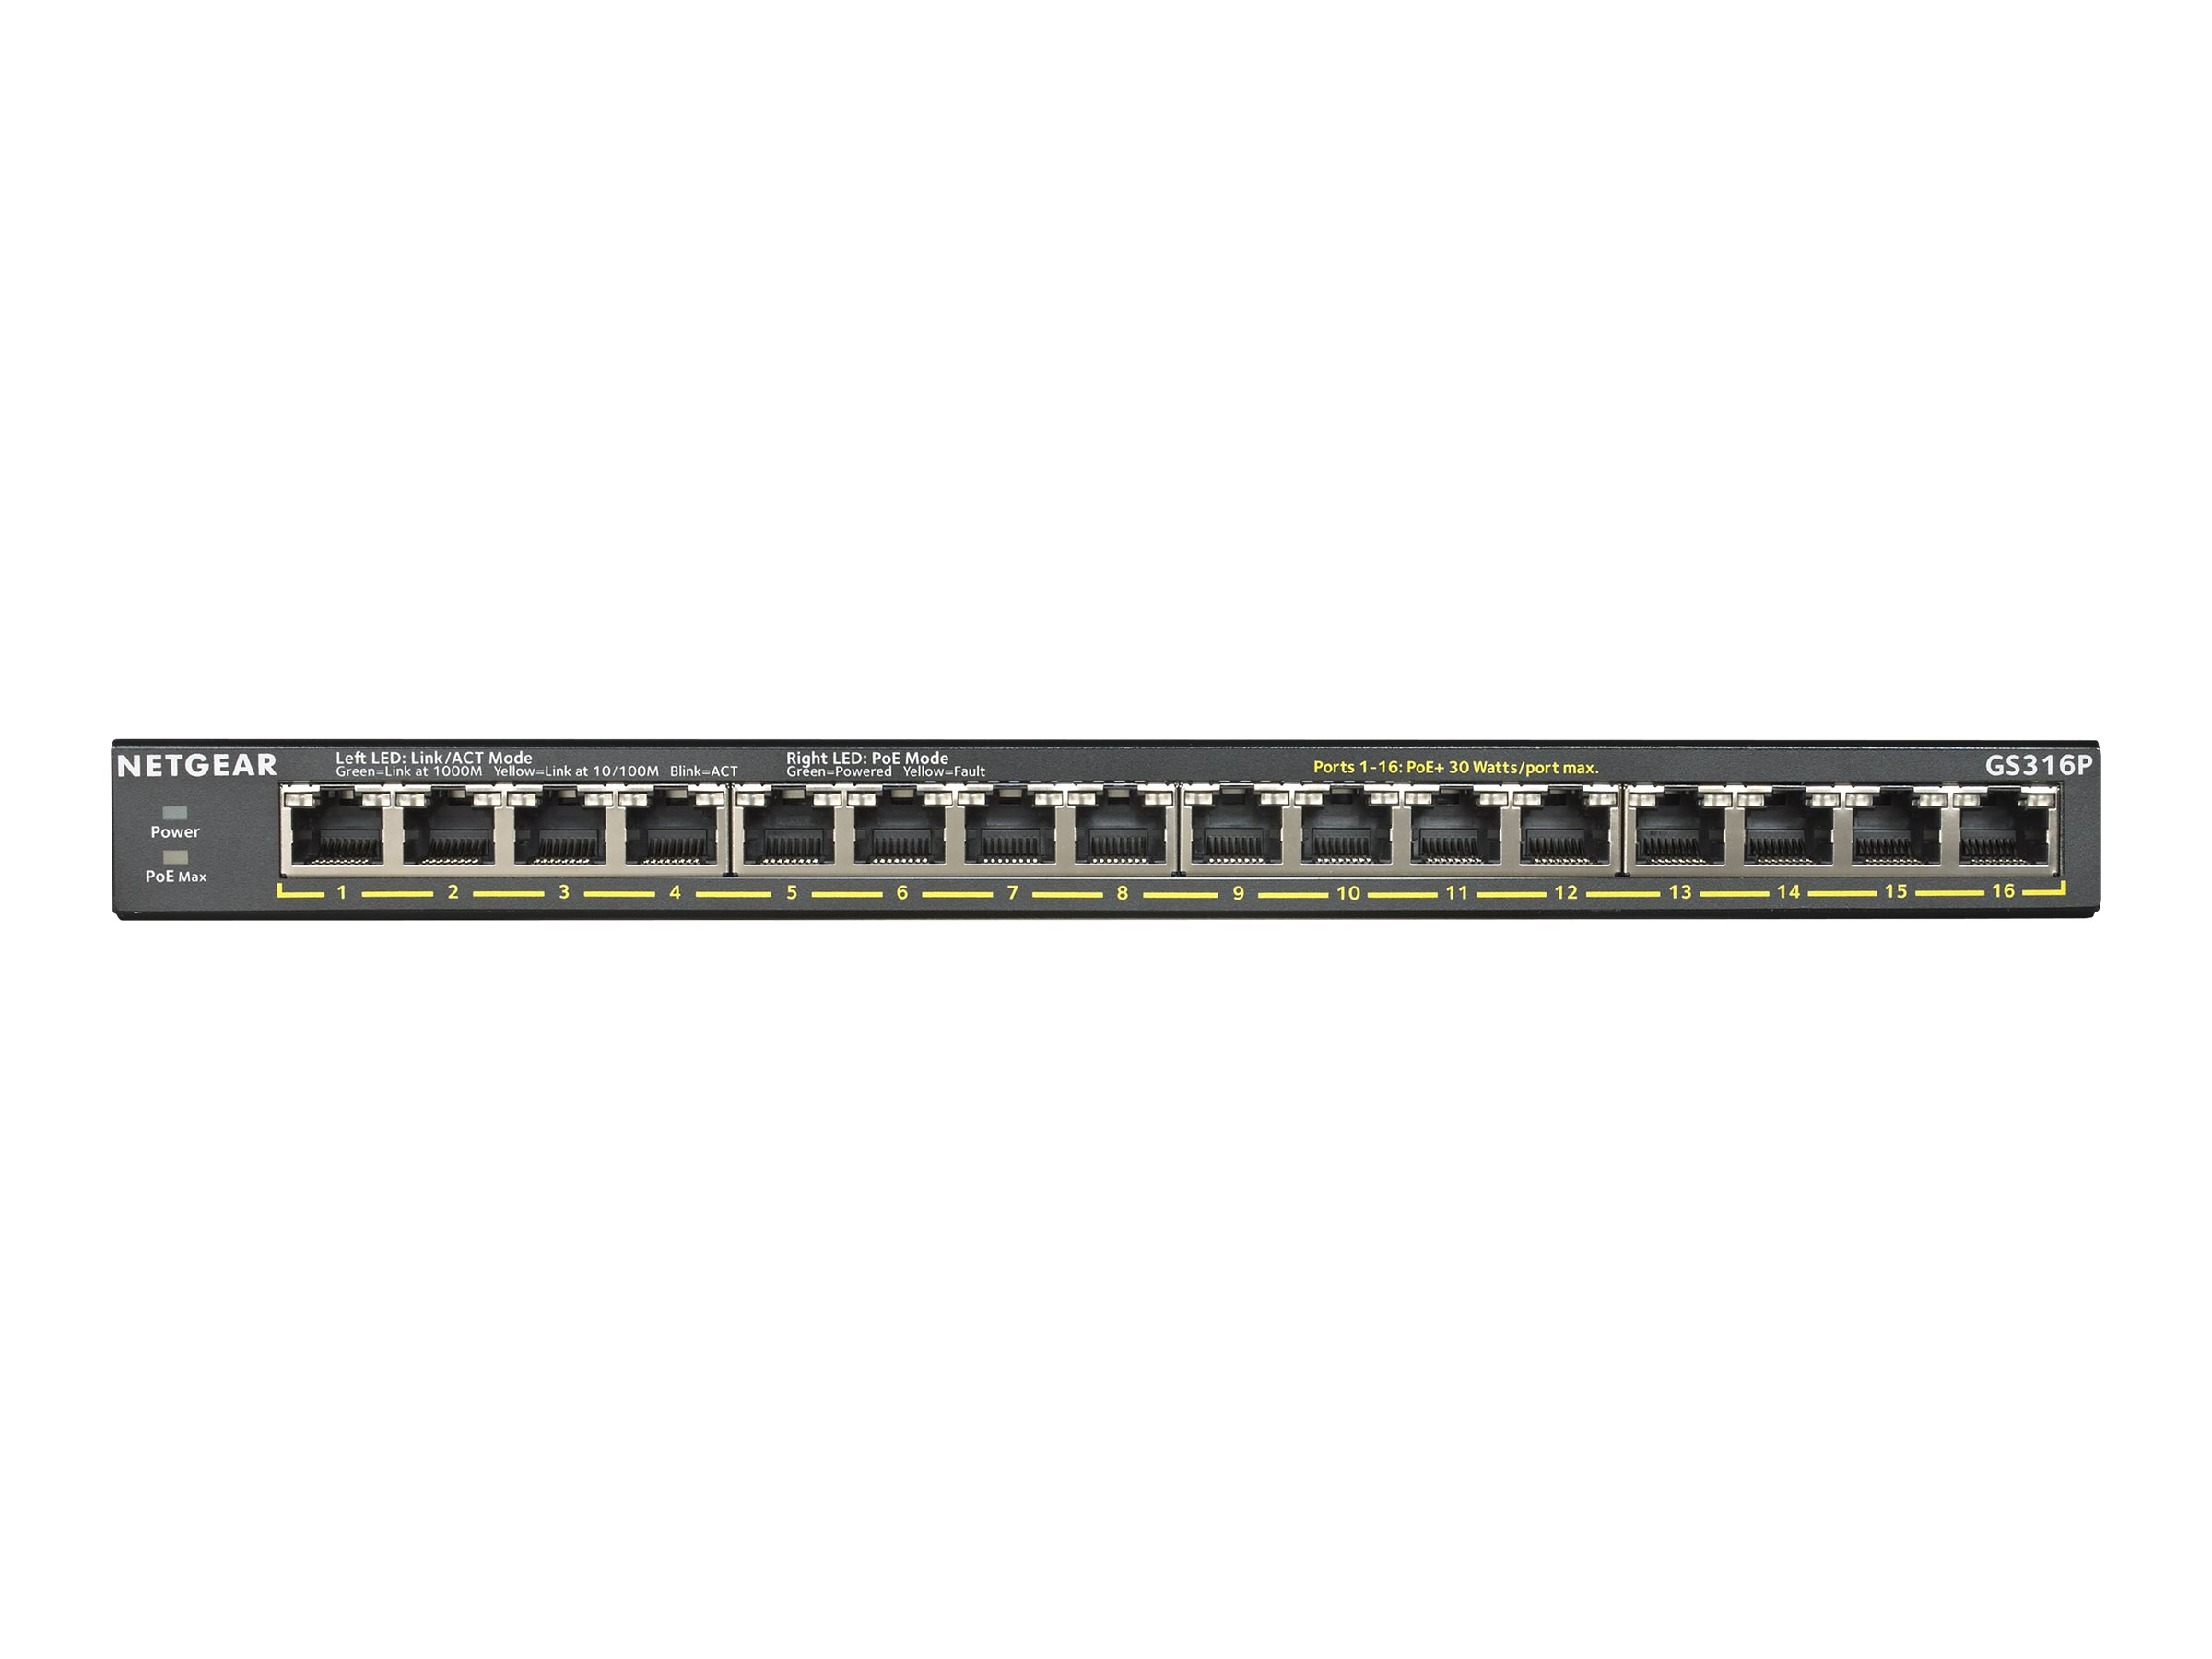 NETGEAR GS316P - switch - 16 ports - unmanaged